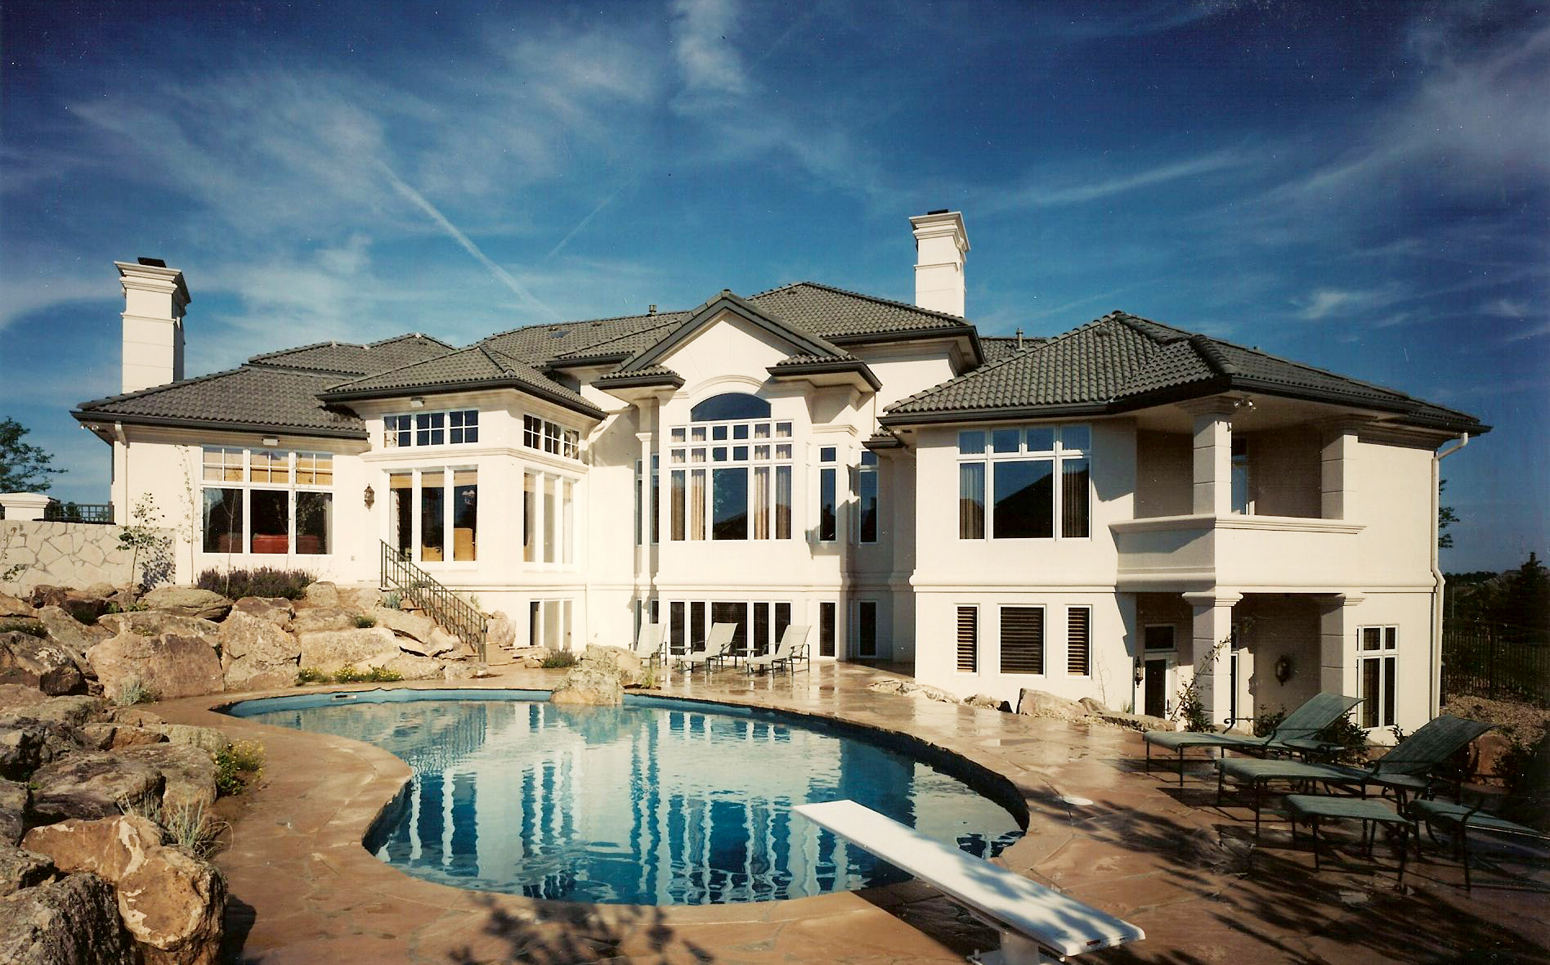 Yearly Existing Home Sales Continue to Increase: